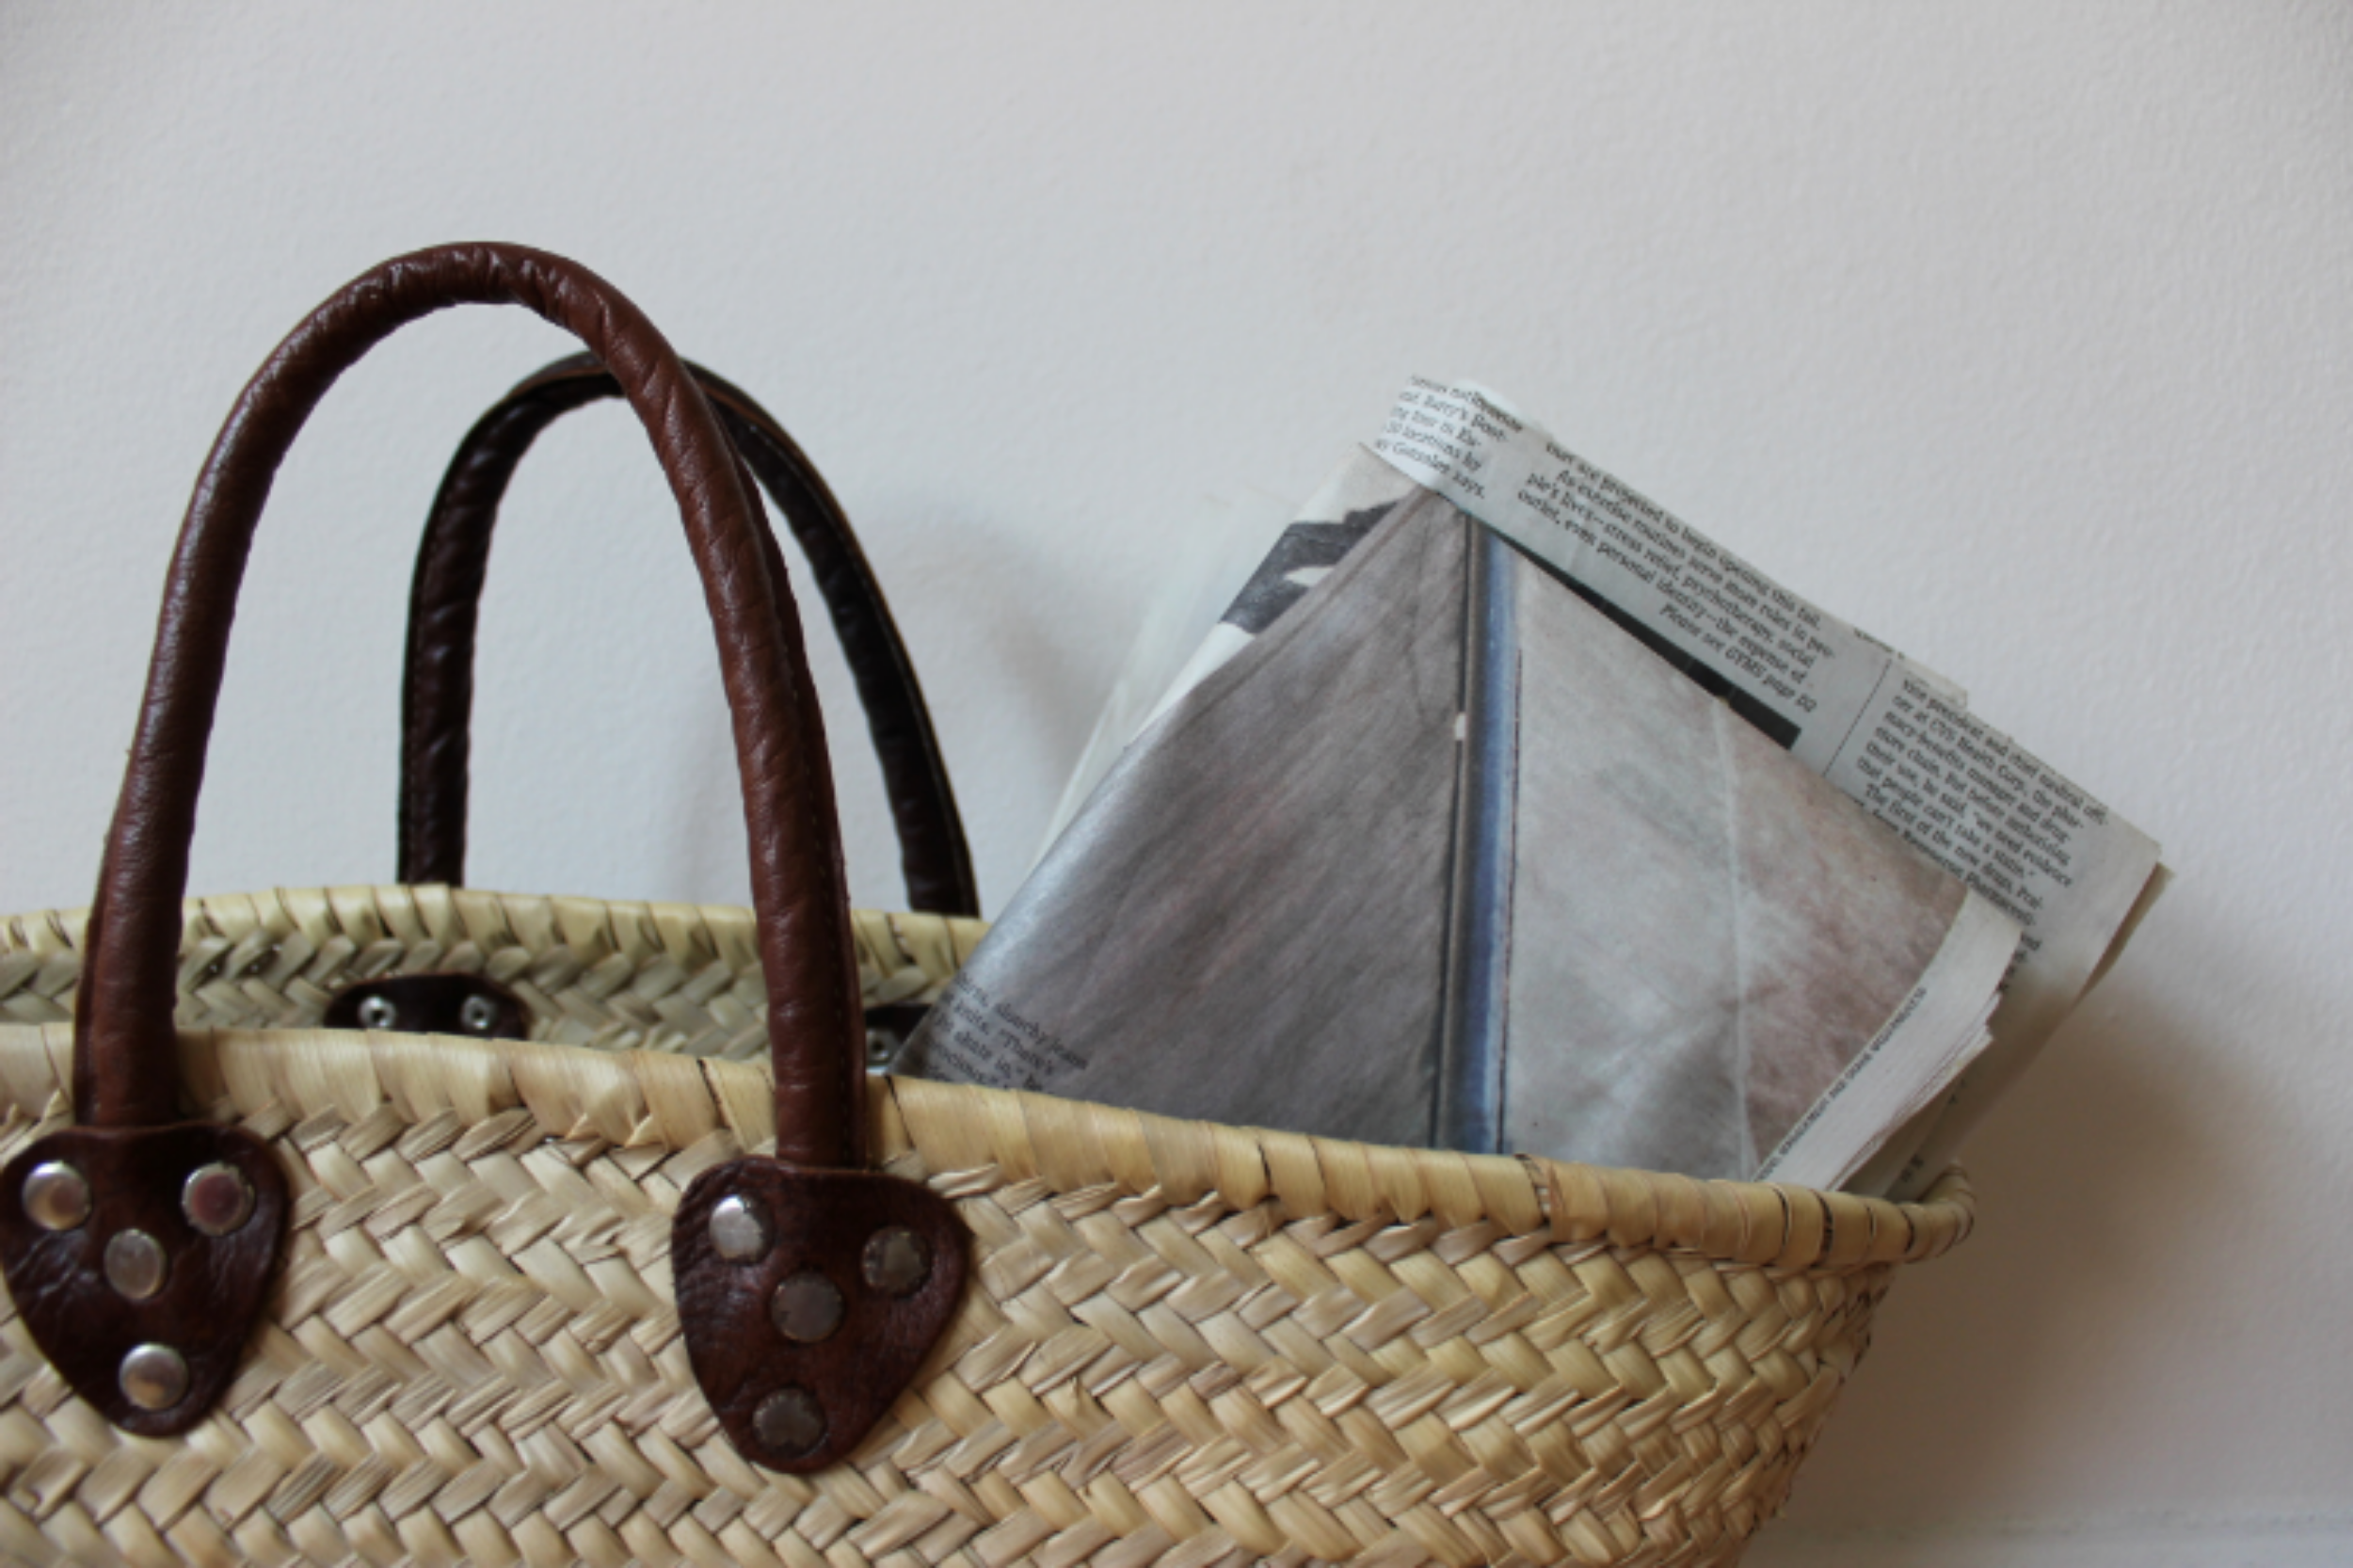 On sharing, swapping, and shopping secondhand to stay zero waste | Litterless